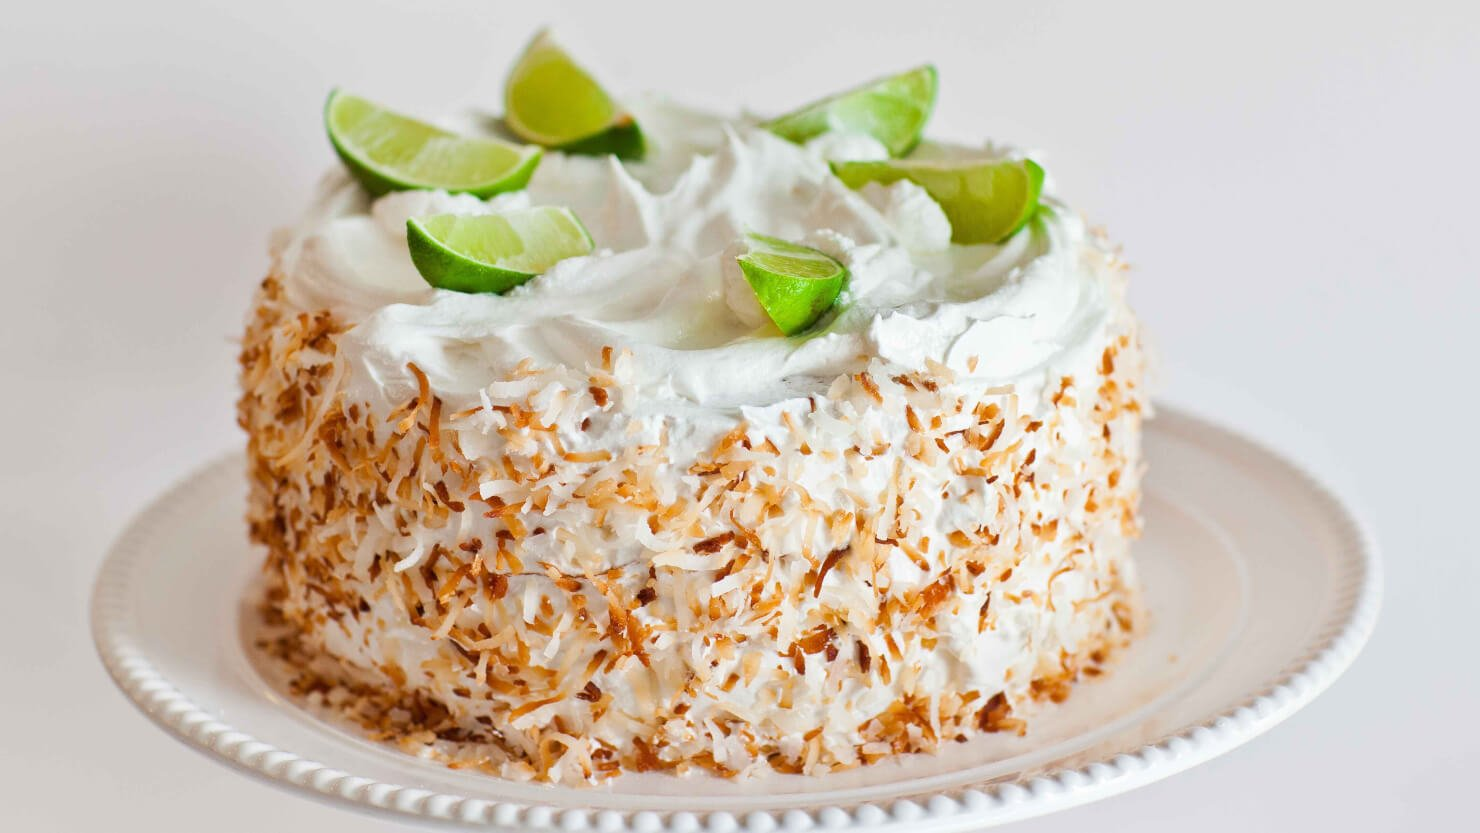 ... coconut lime cup cake s lime and coconut ice cream lime in the coconut